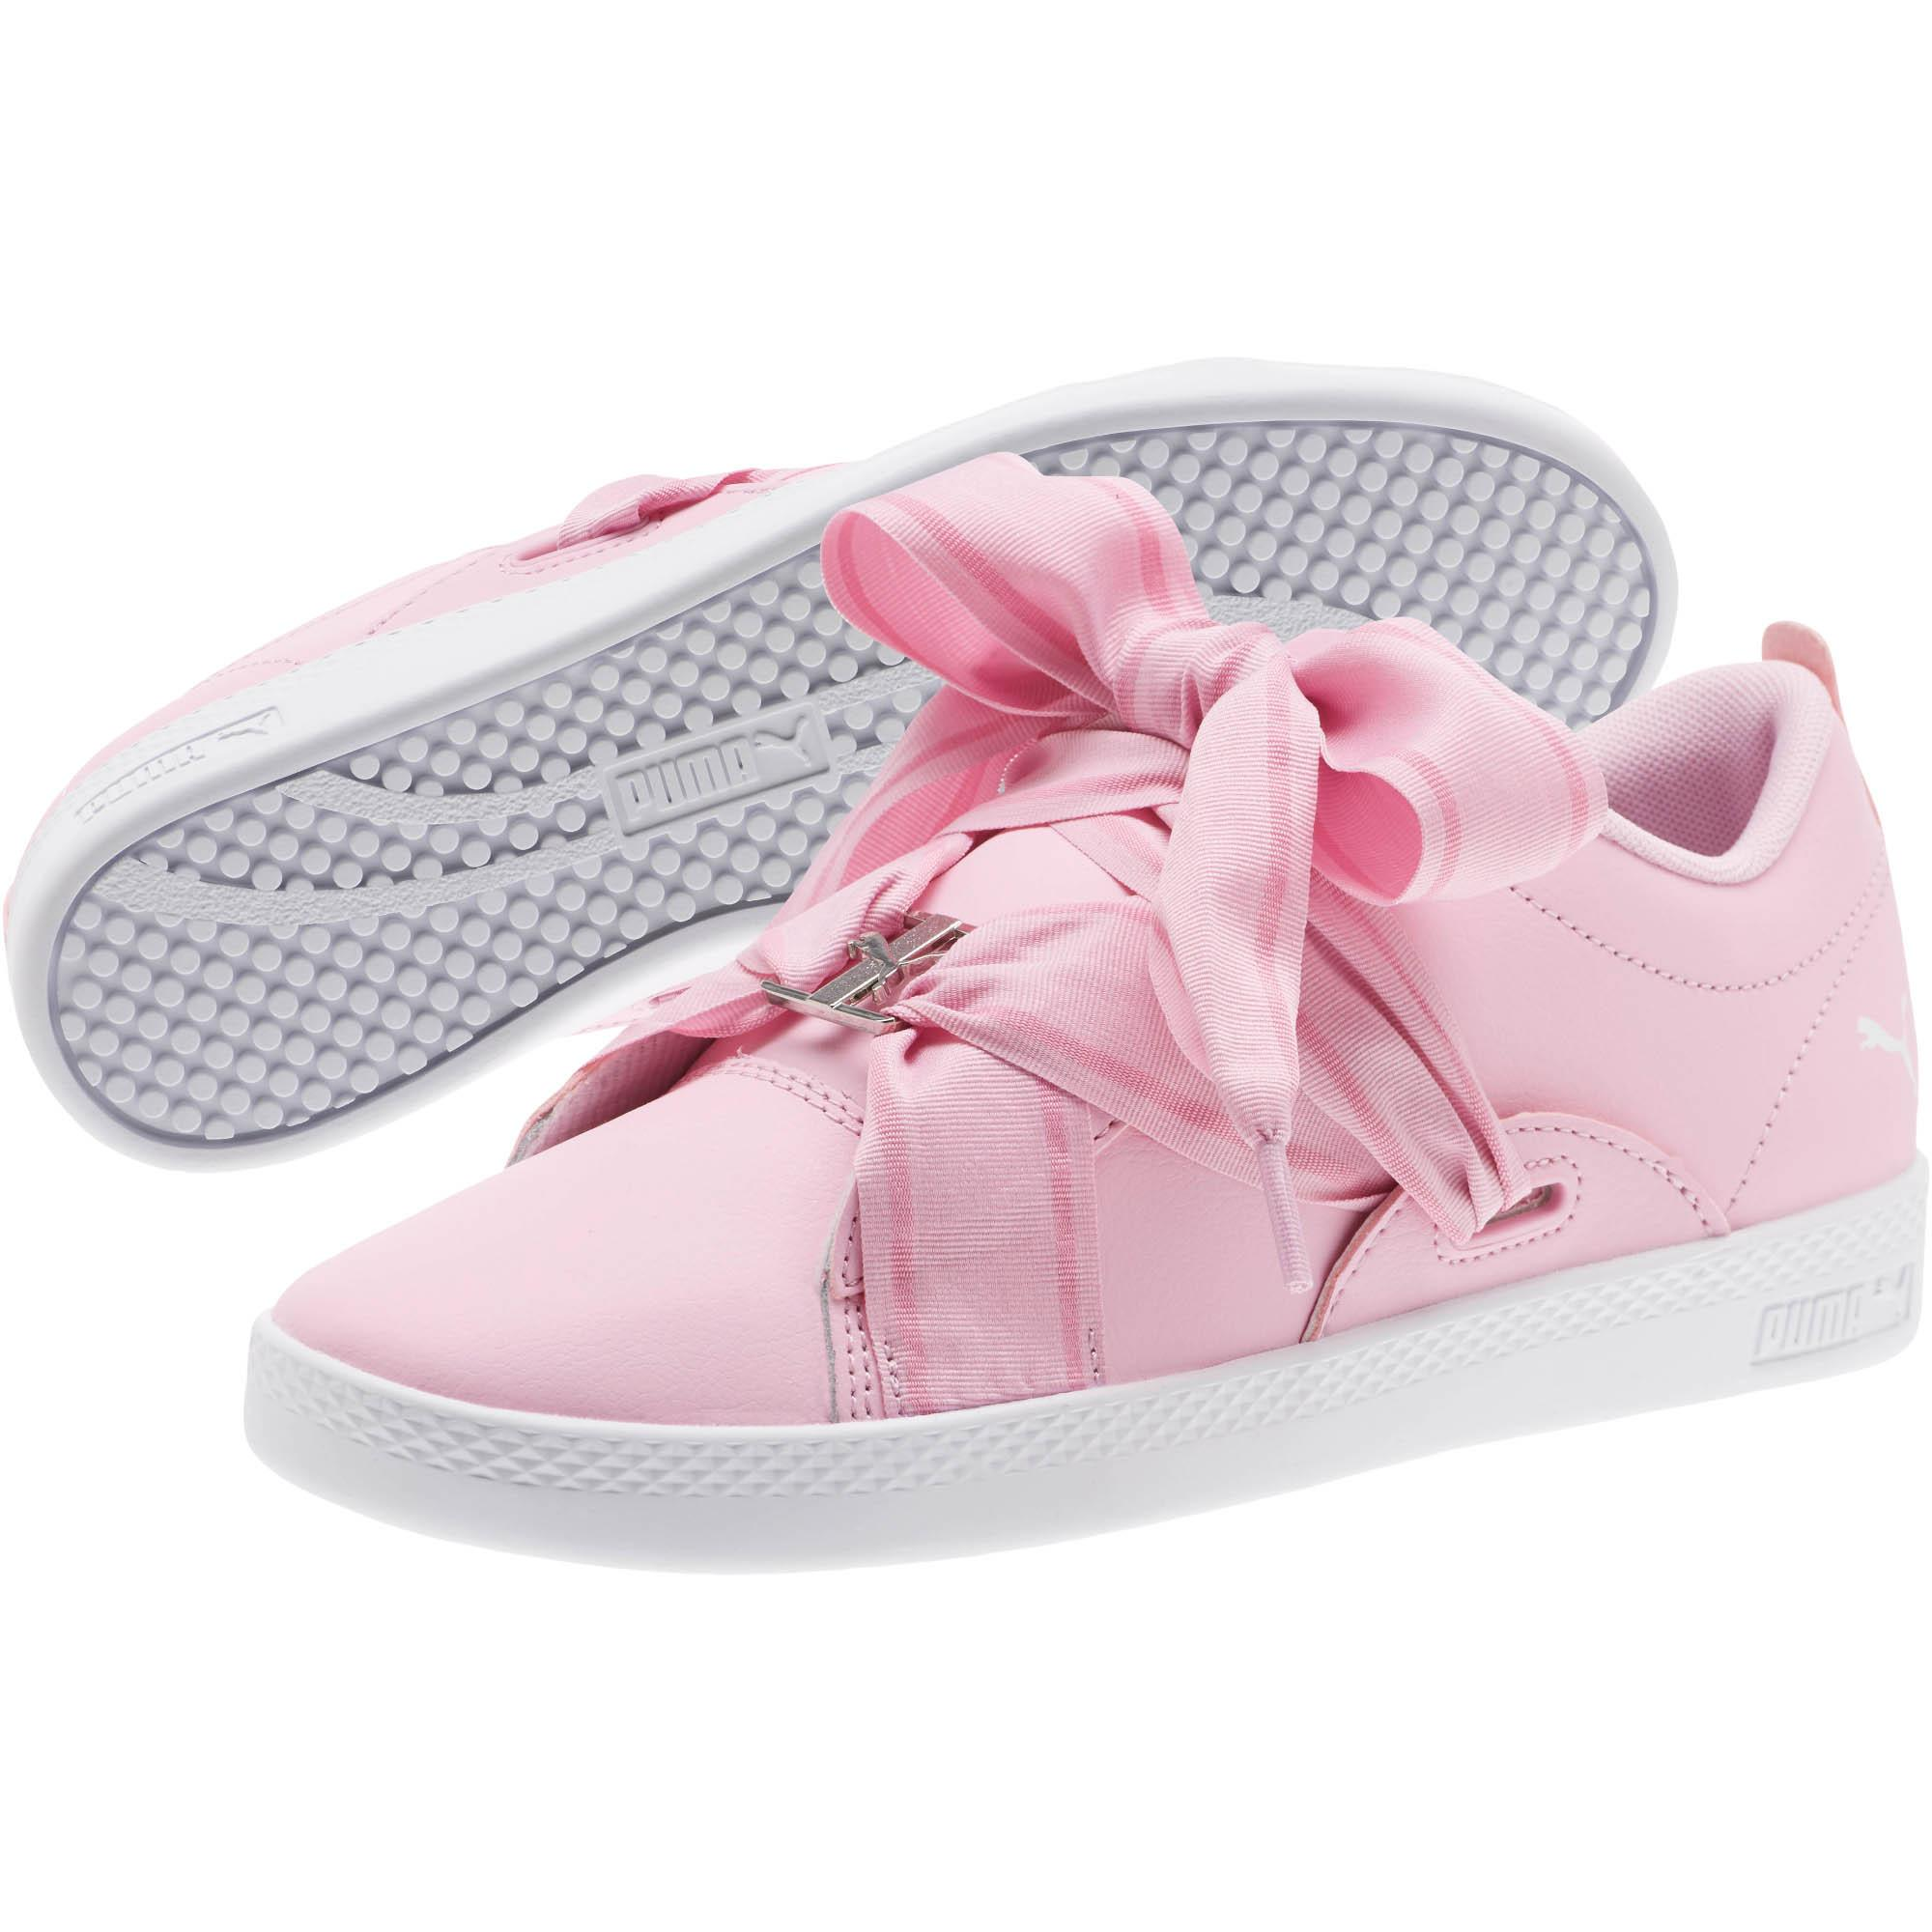 PUMA - Pink Smash Women s Buckle Sneakers - Lyst. View fullscreen 7b3b7b84a